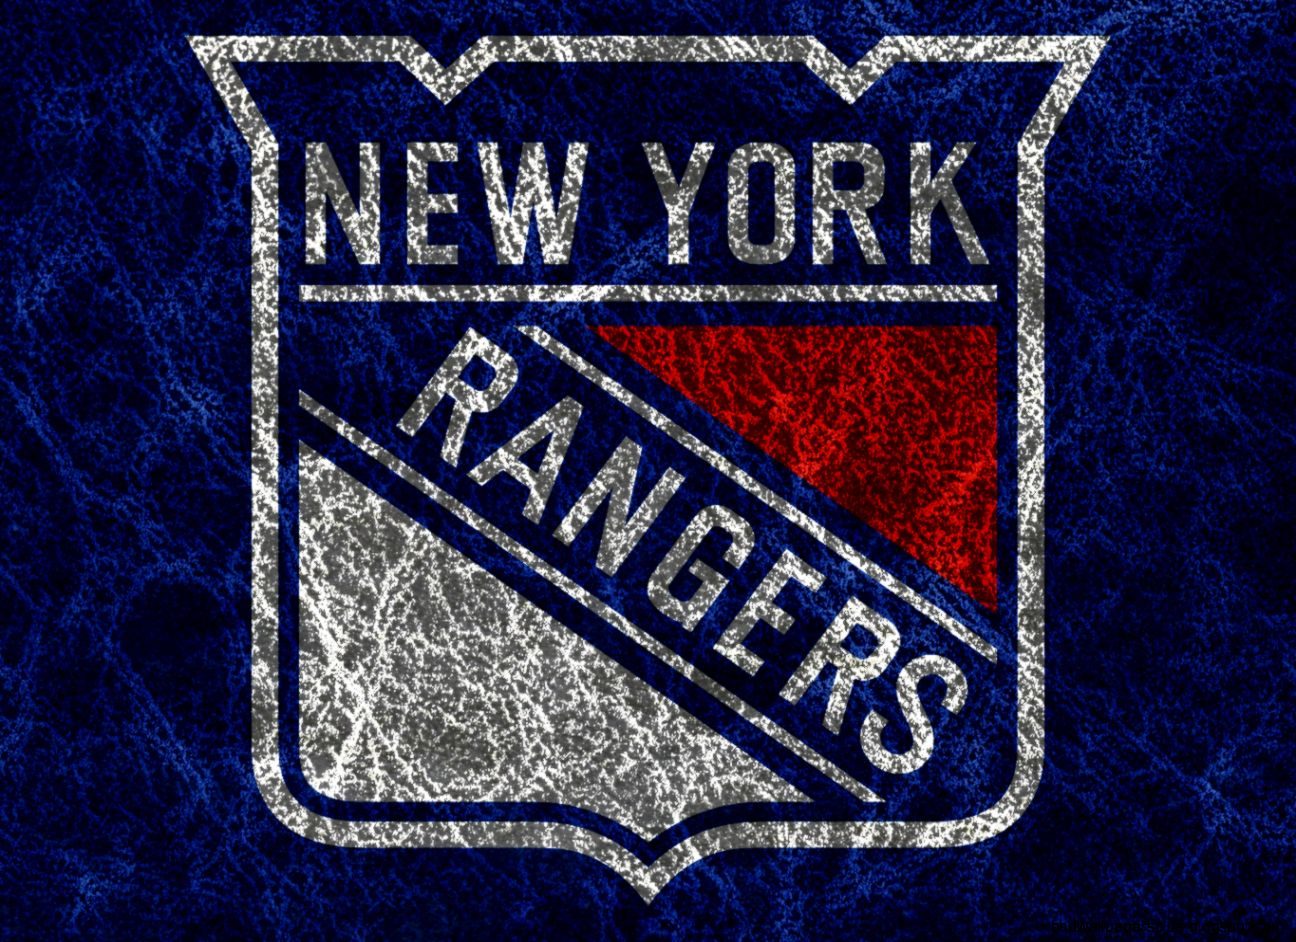 Wallpapers on NewYorkRangers   DeviantArt